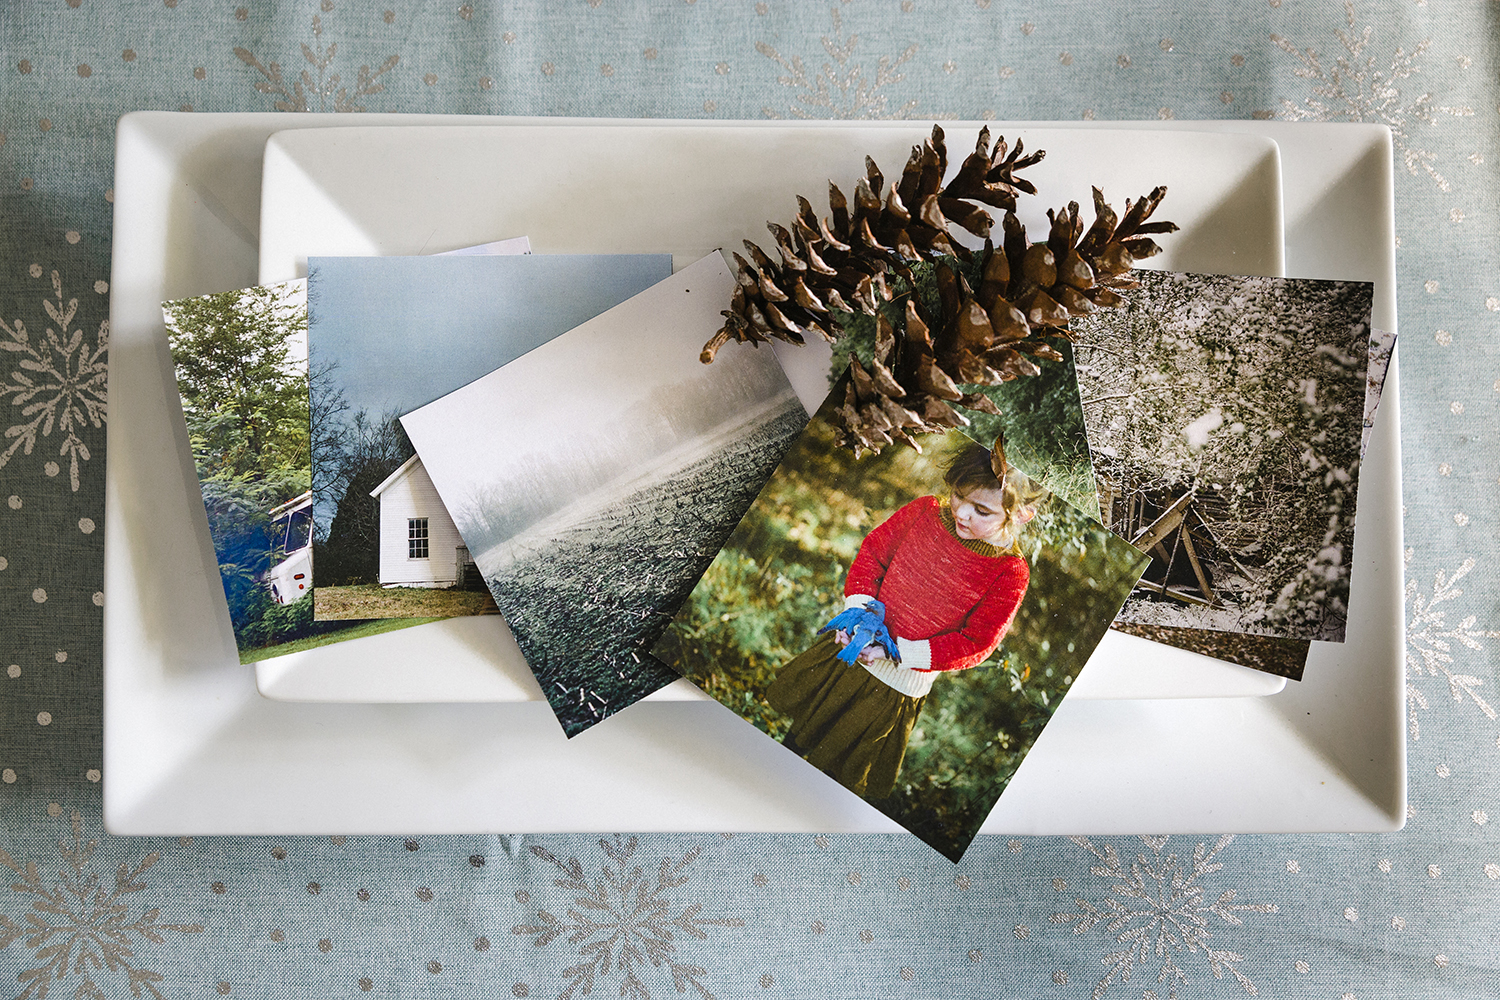 photographs by Ashleigh Coleman - displayed on white platter